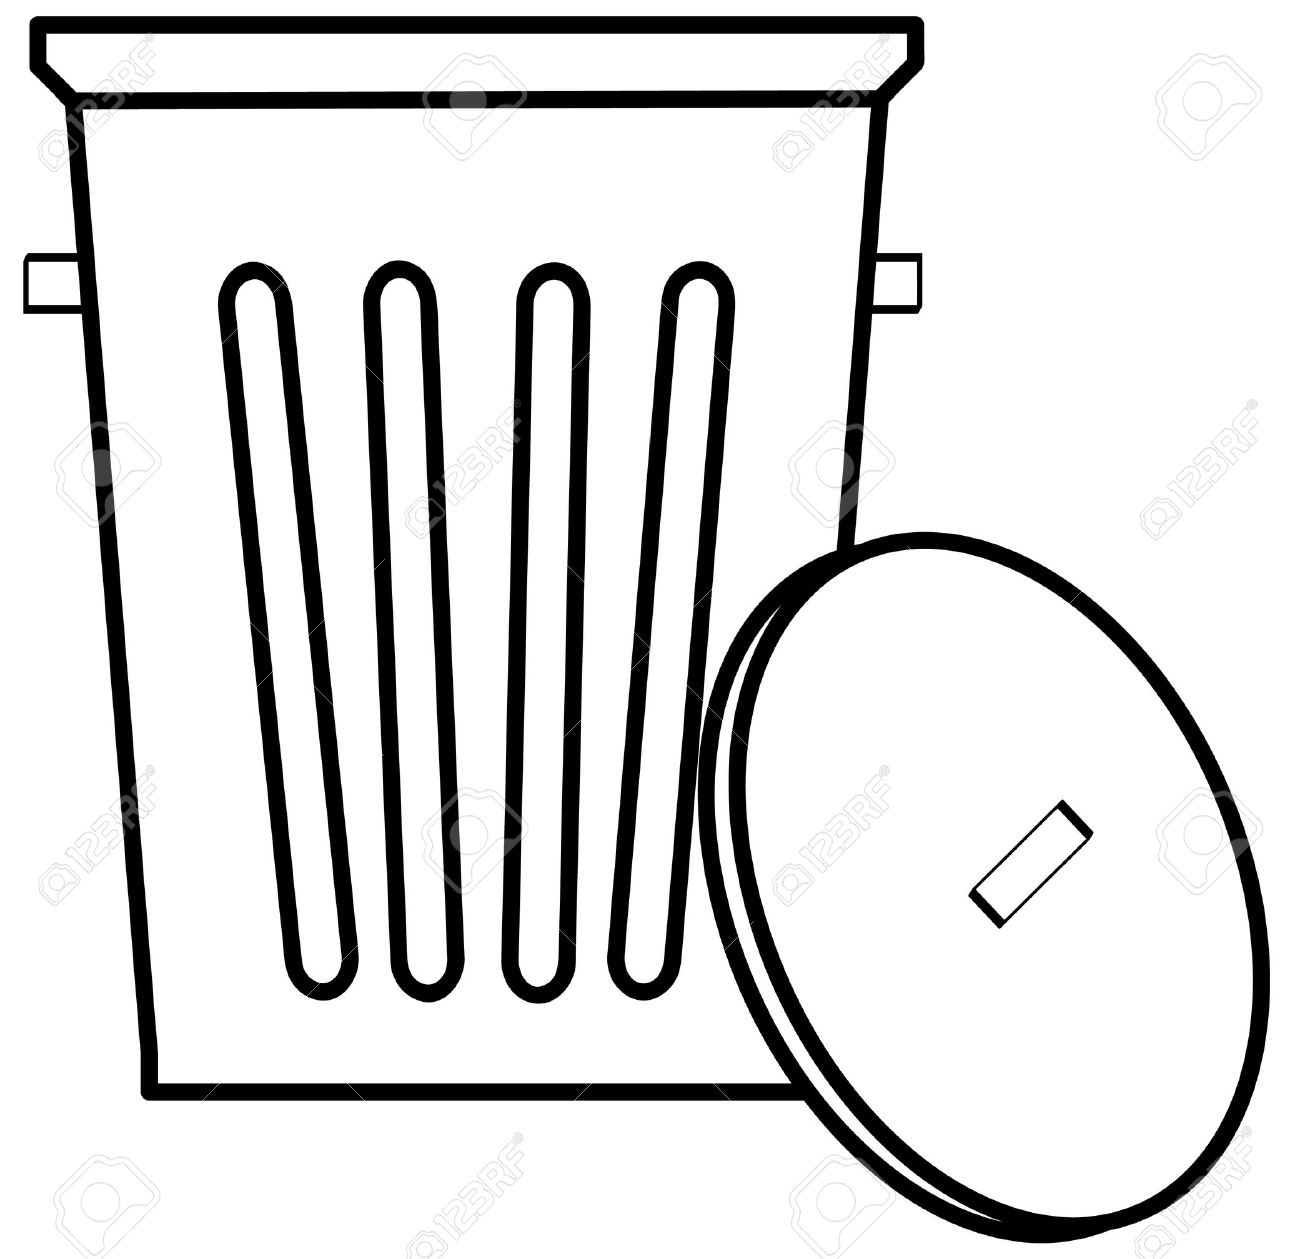 Trash can clipart black and white png freeuse stock Trash can clipart black and white » Clipart Station png freeuse stock